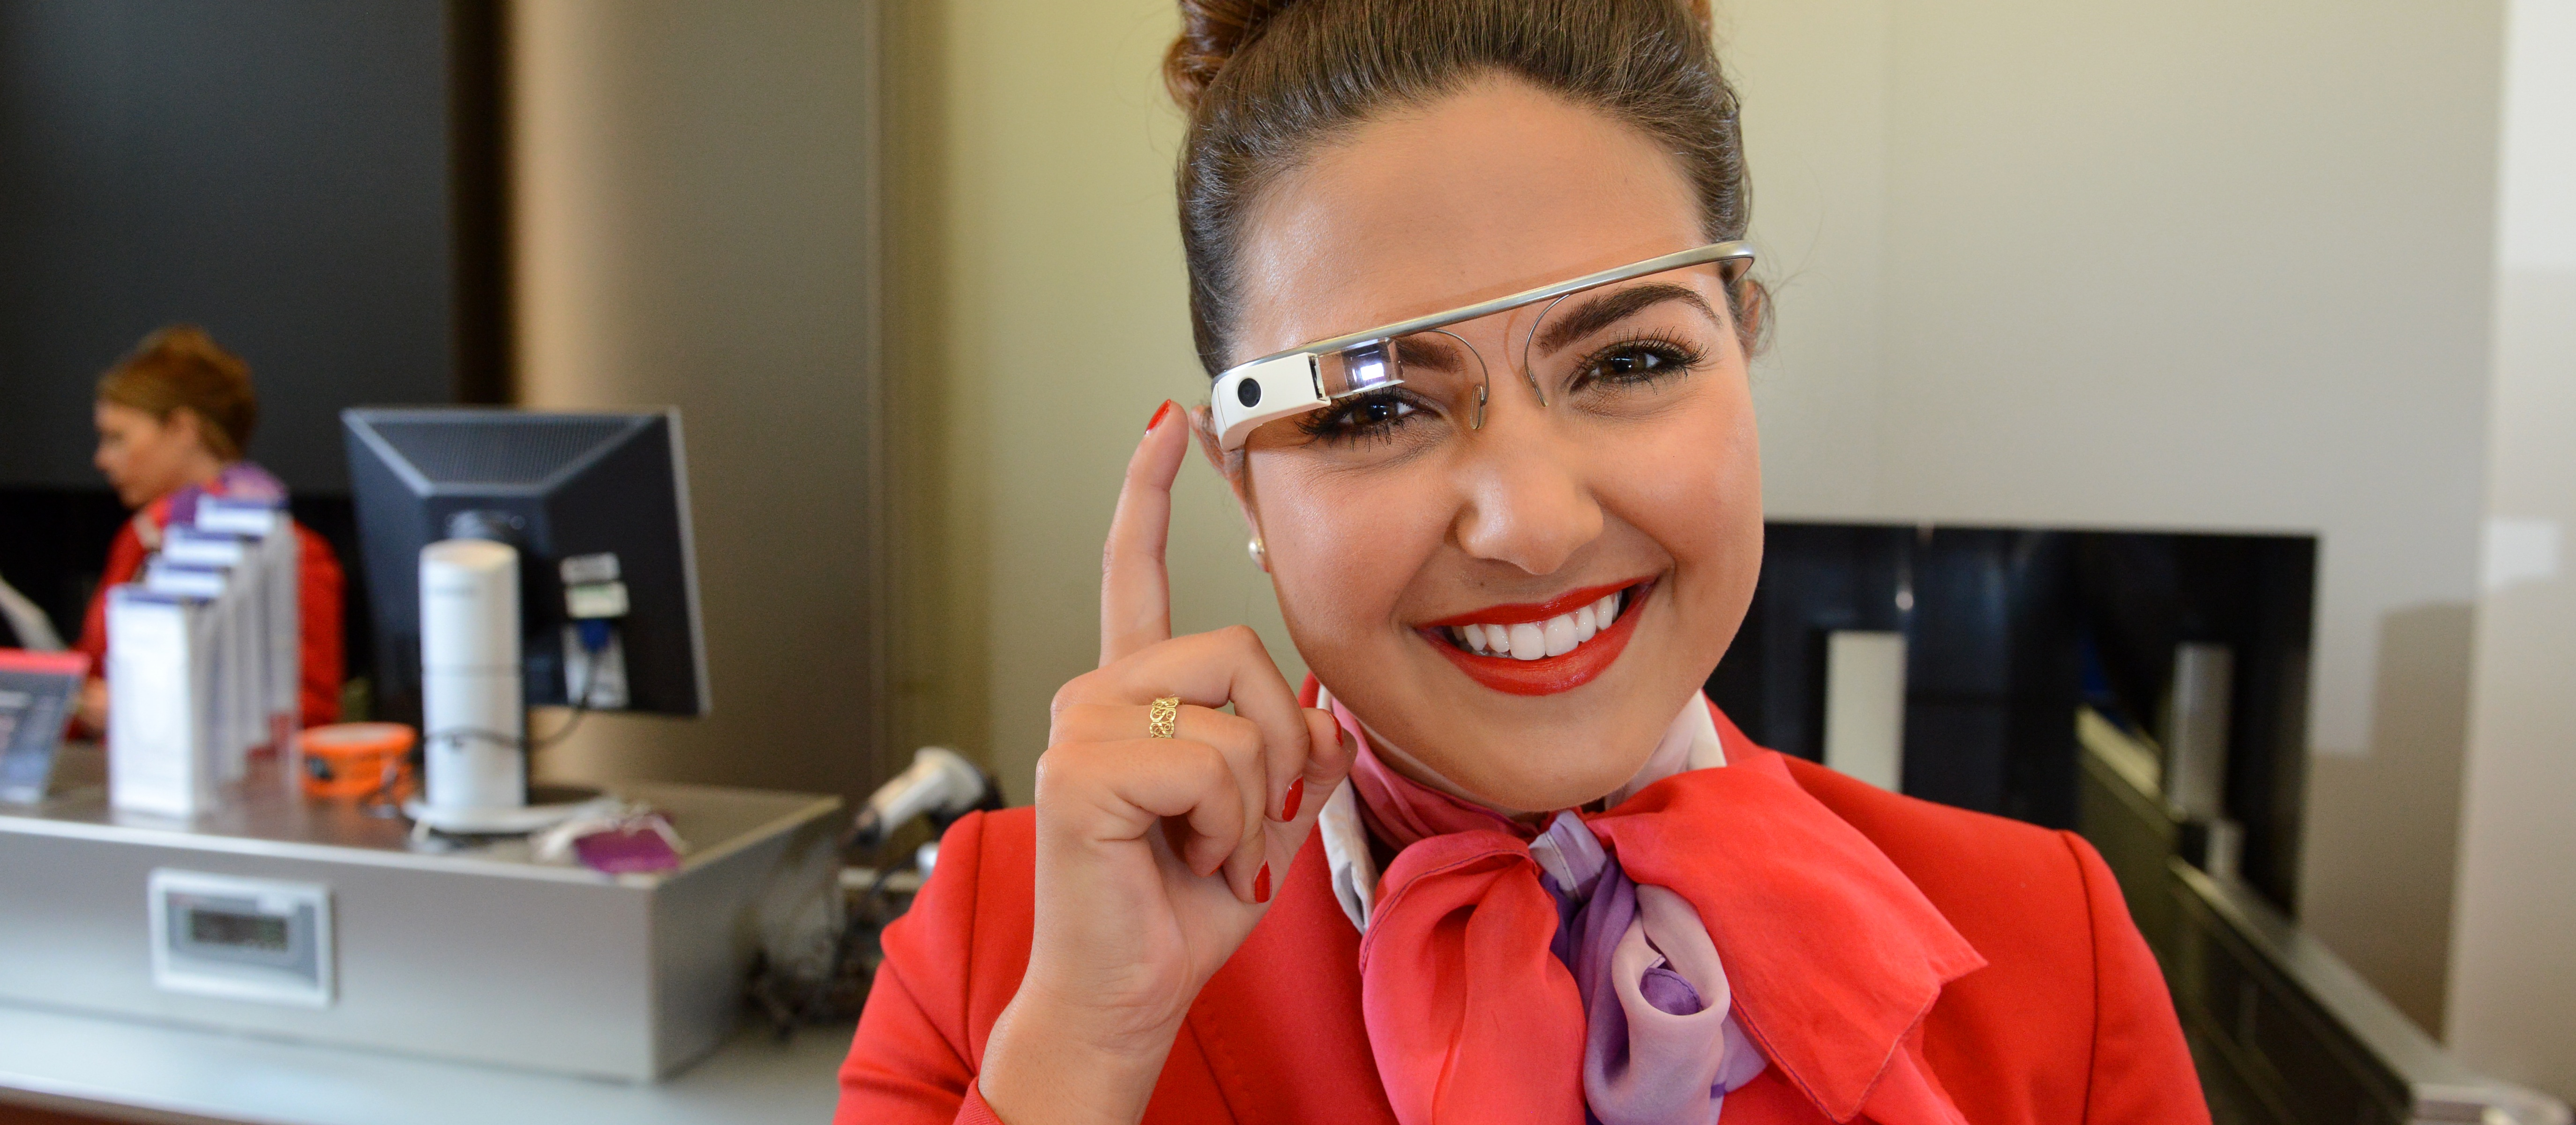 Google Glass worn by Virgin Atlantic staff to assist passengers at London's Heathrow airport